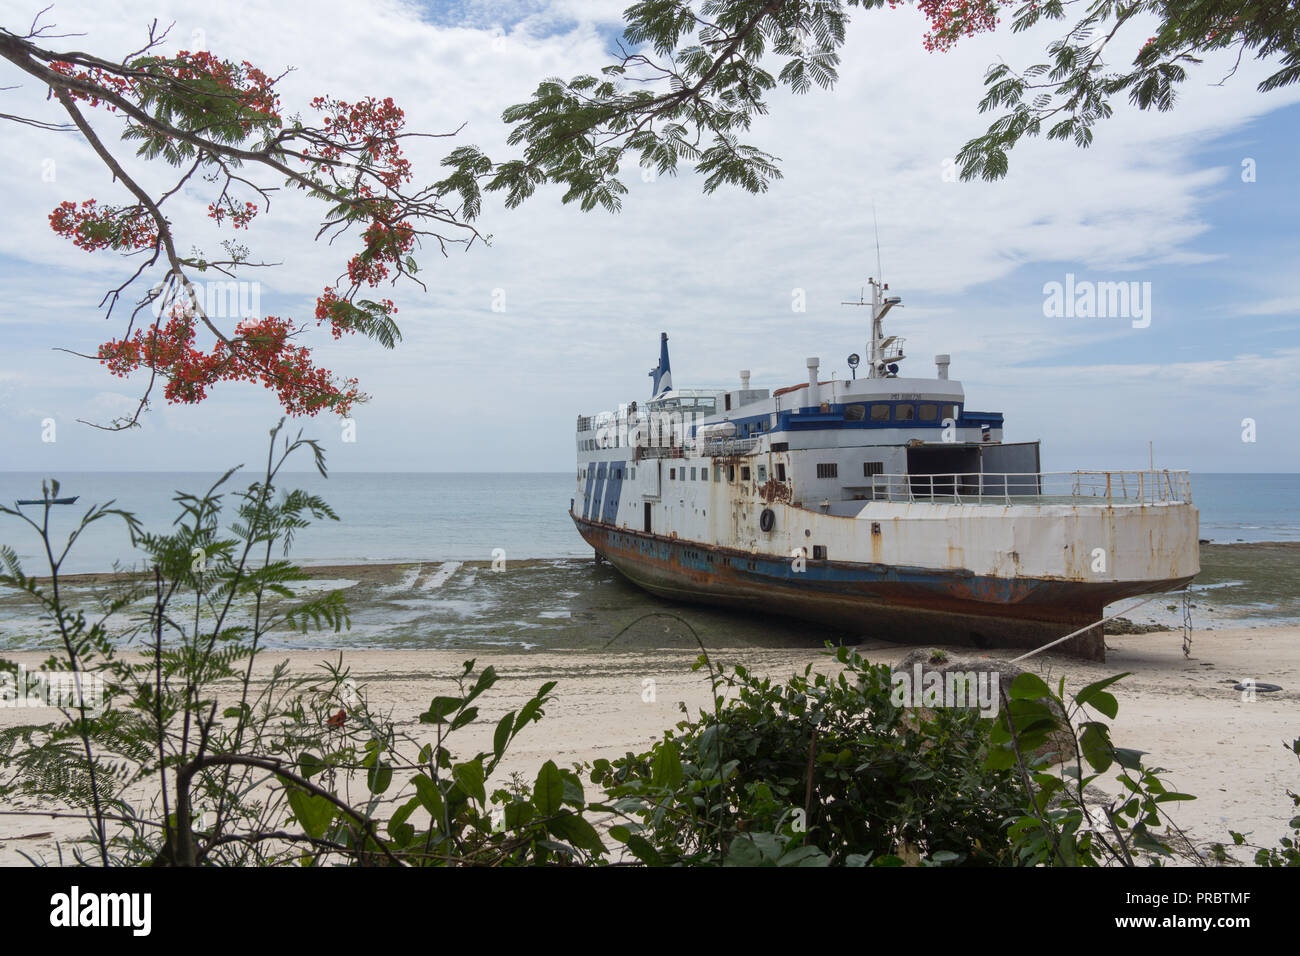 an old ferry between Unguja and Pemba islands in Zanzibar, that had run aground on the north western coast of Unguja - Stock Image